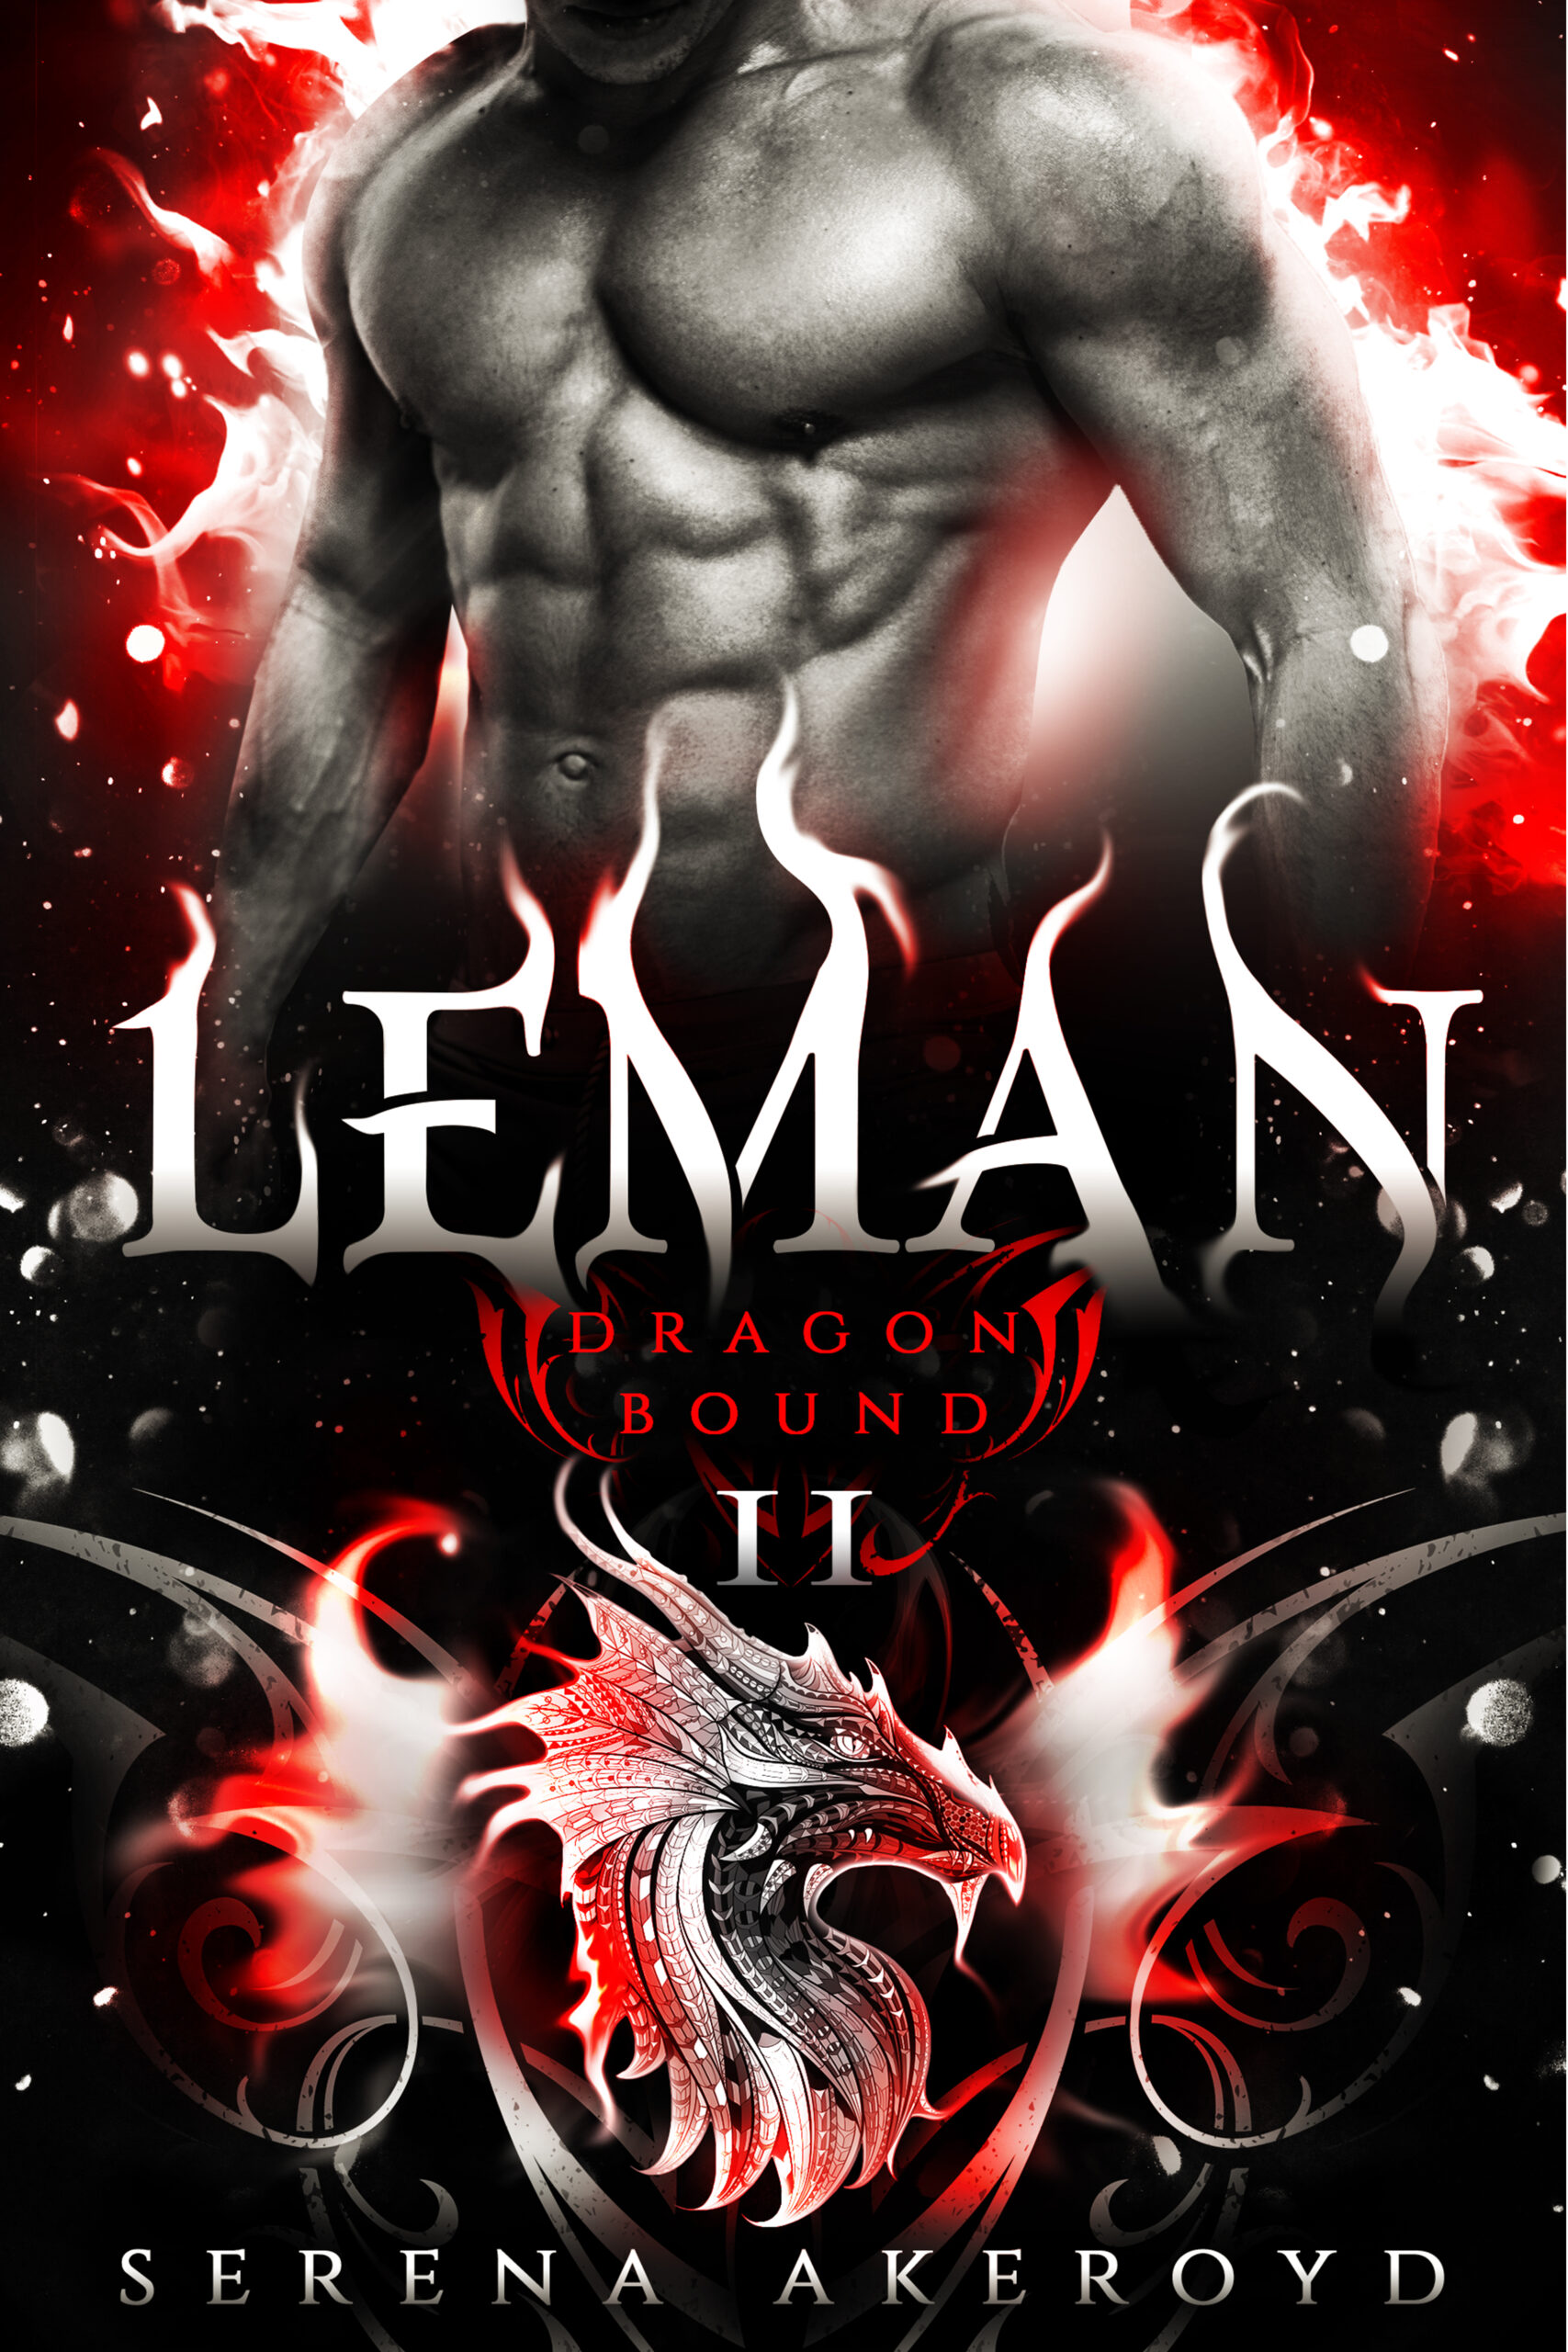 Leman cover link to purchase